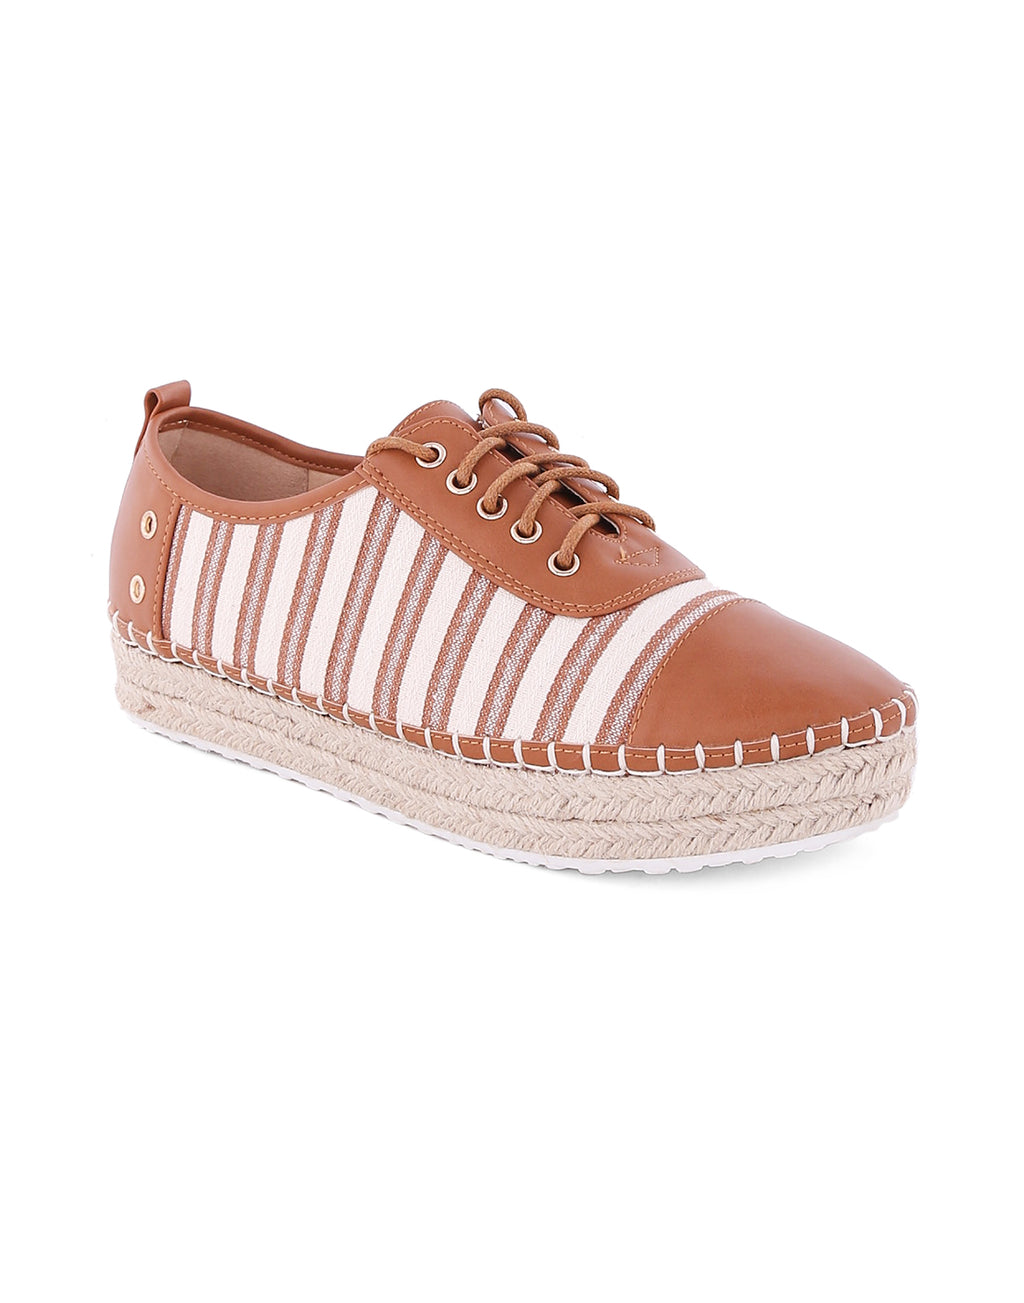 Talmaia Tan Stripped Sneakers